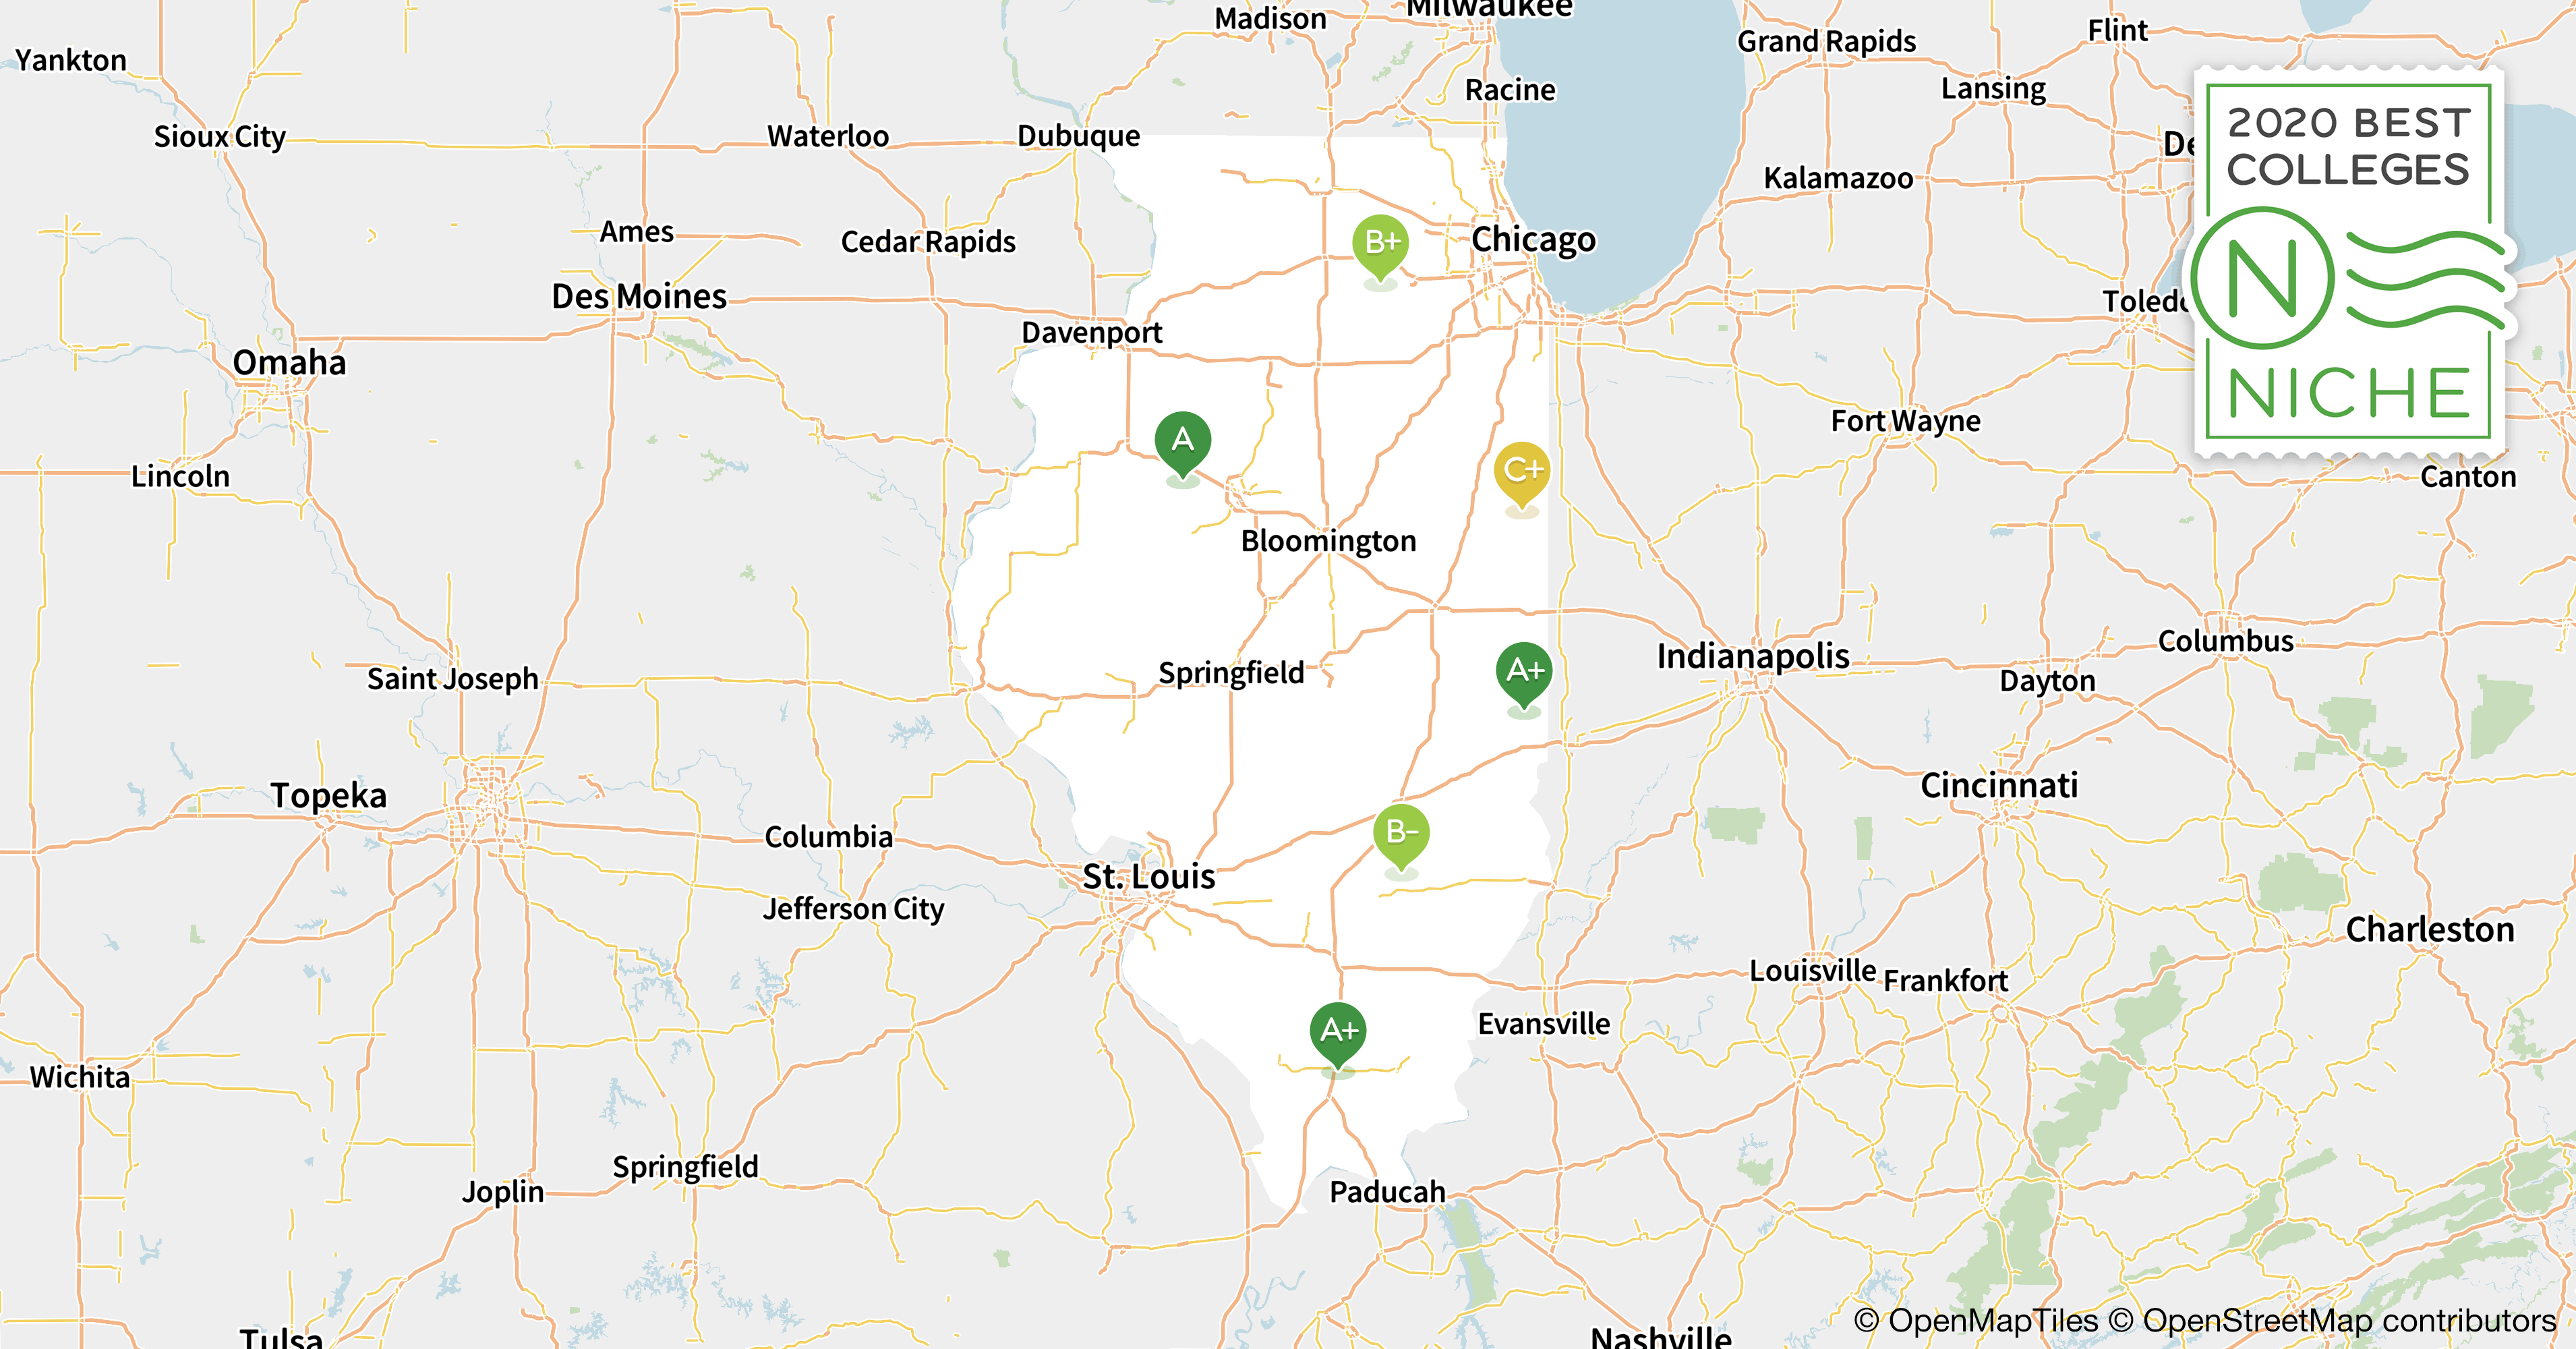 2020 Best Colleges in Illinois - Niche